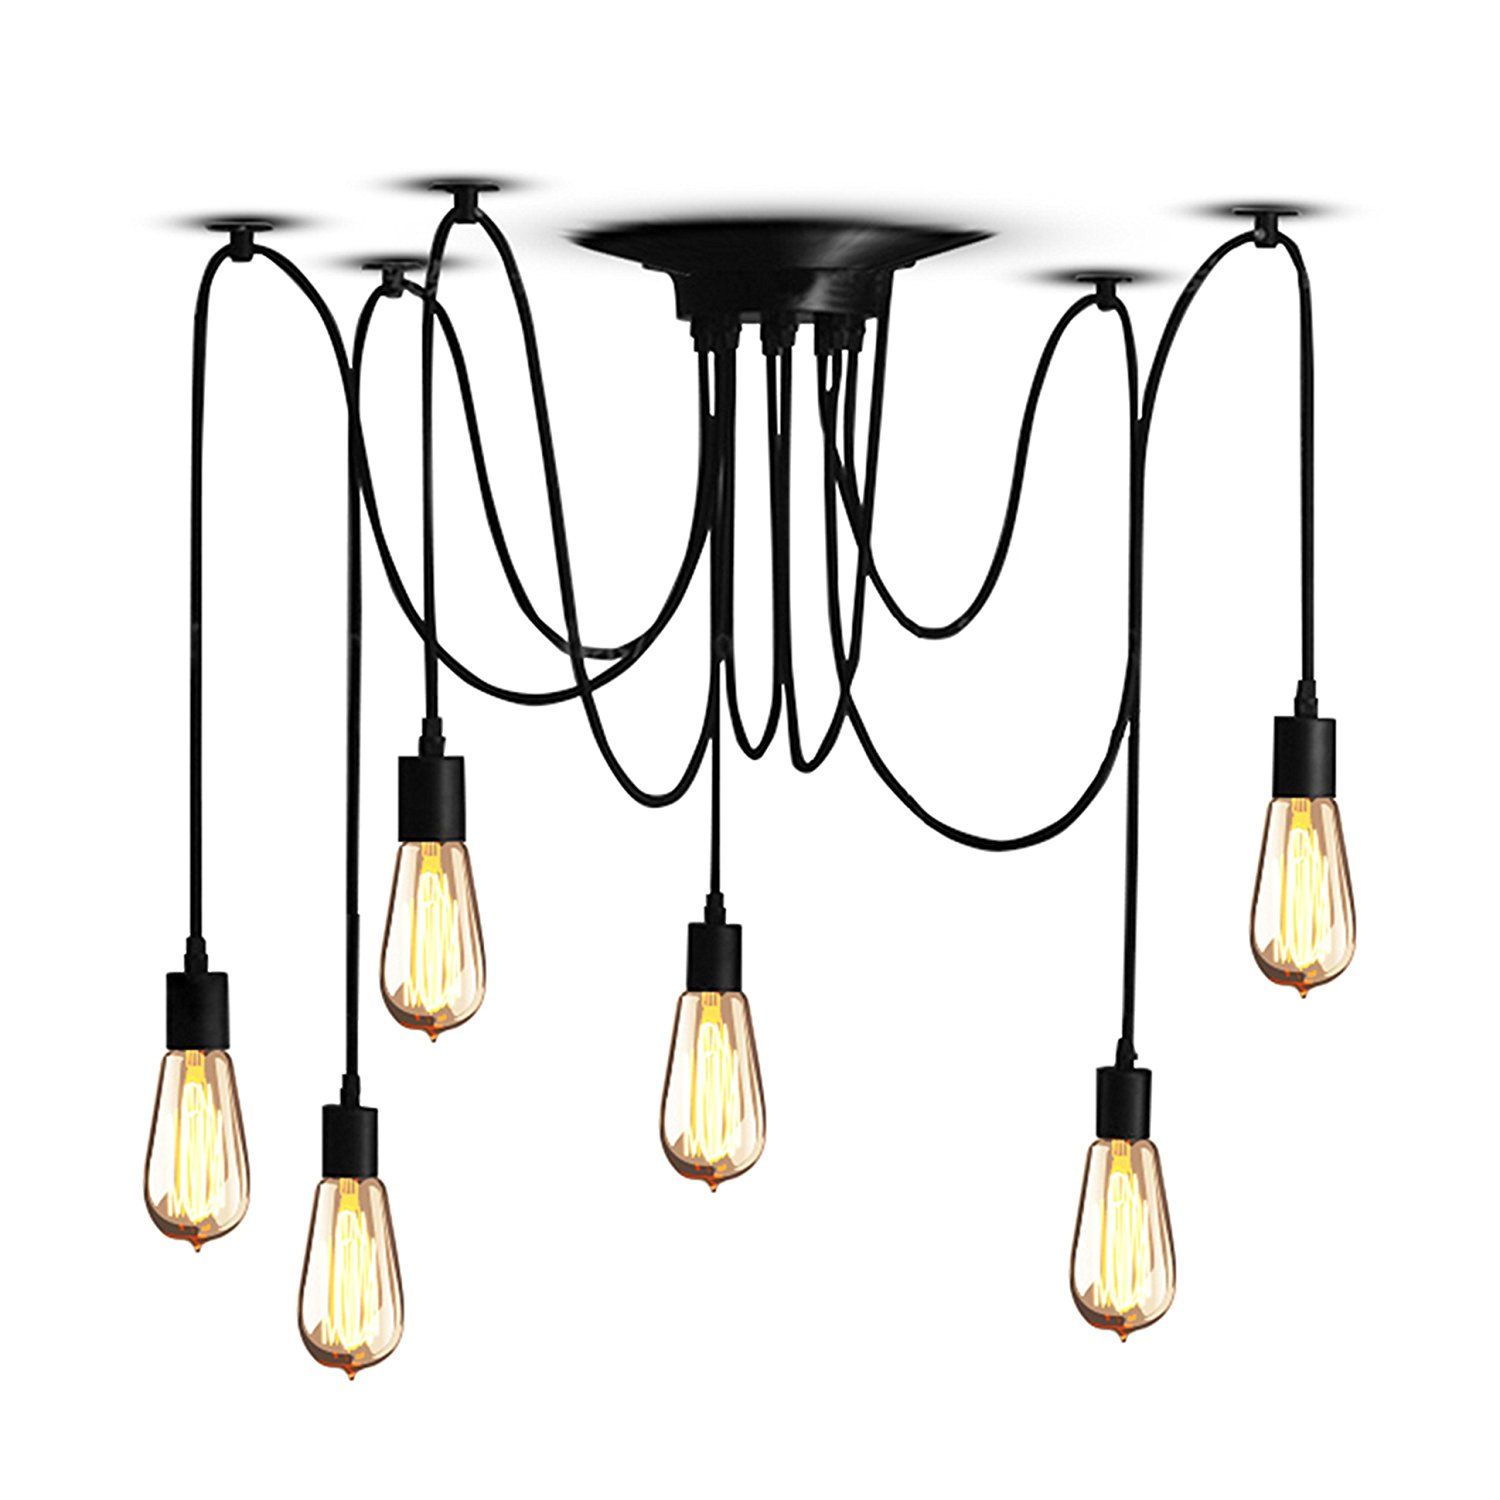 Farmhouse light fixtures under 200 on amazon southern made farmhouse light fixtures arubaitofo Image collections